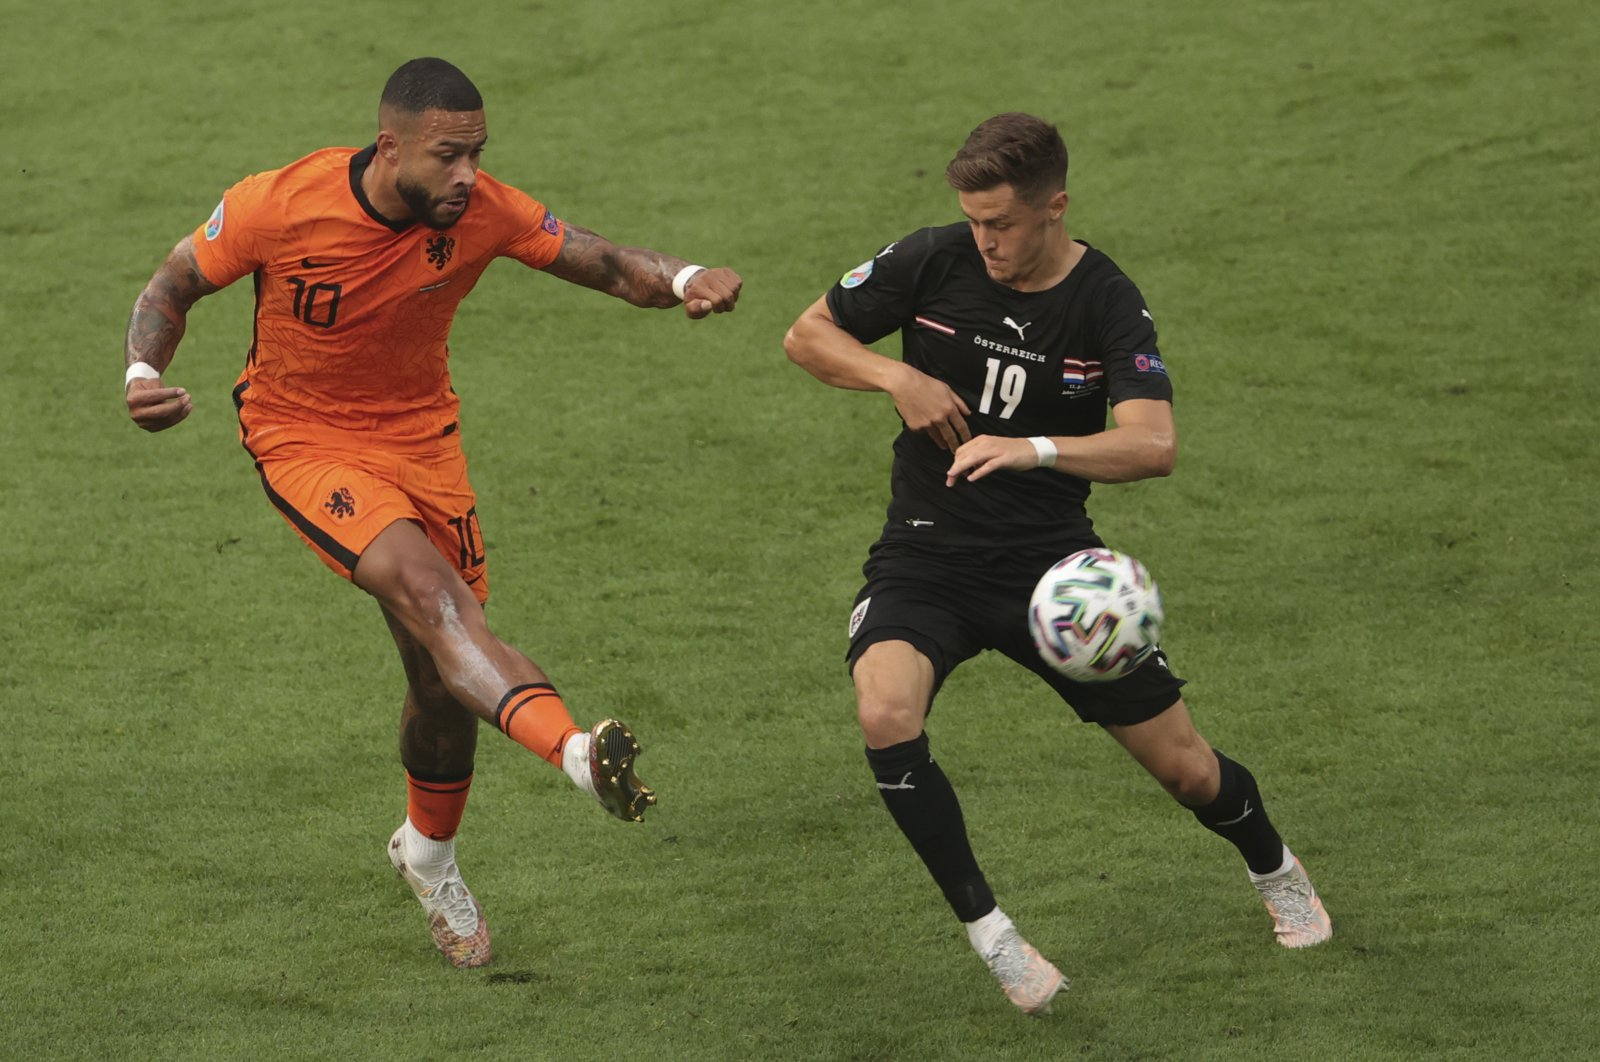 Dutch player Memphis Depay (10) in action with Austria's Christoph Baumgartner (19) during the EURO 2020 match on June 17, 2021 (AA Photo)